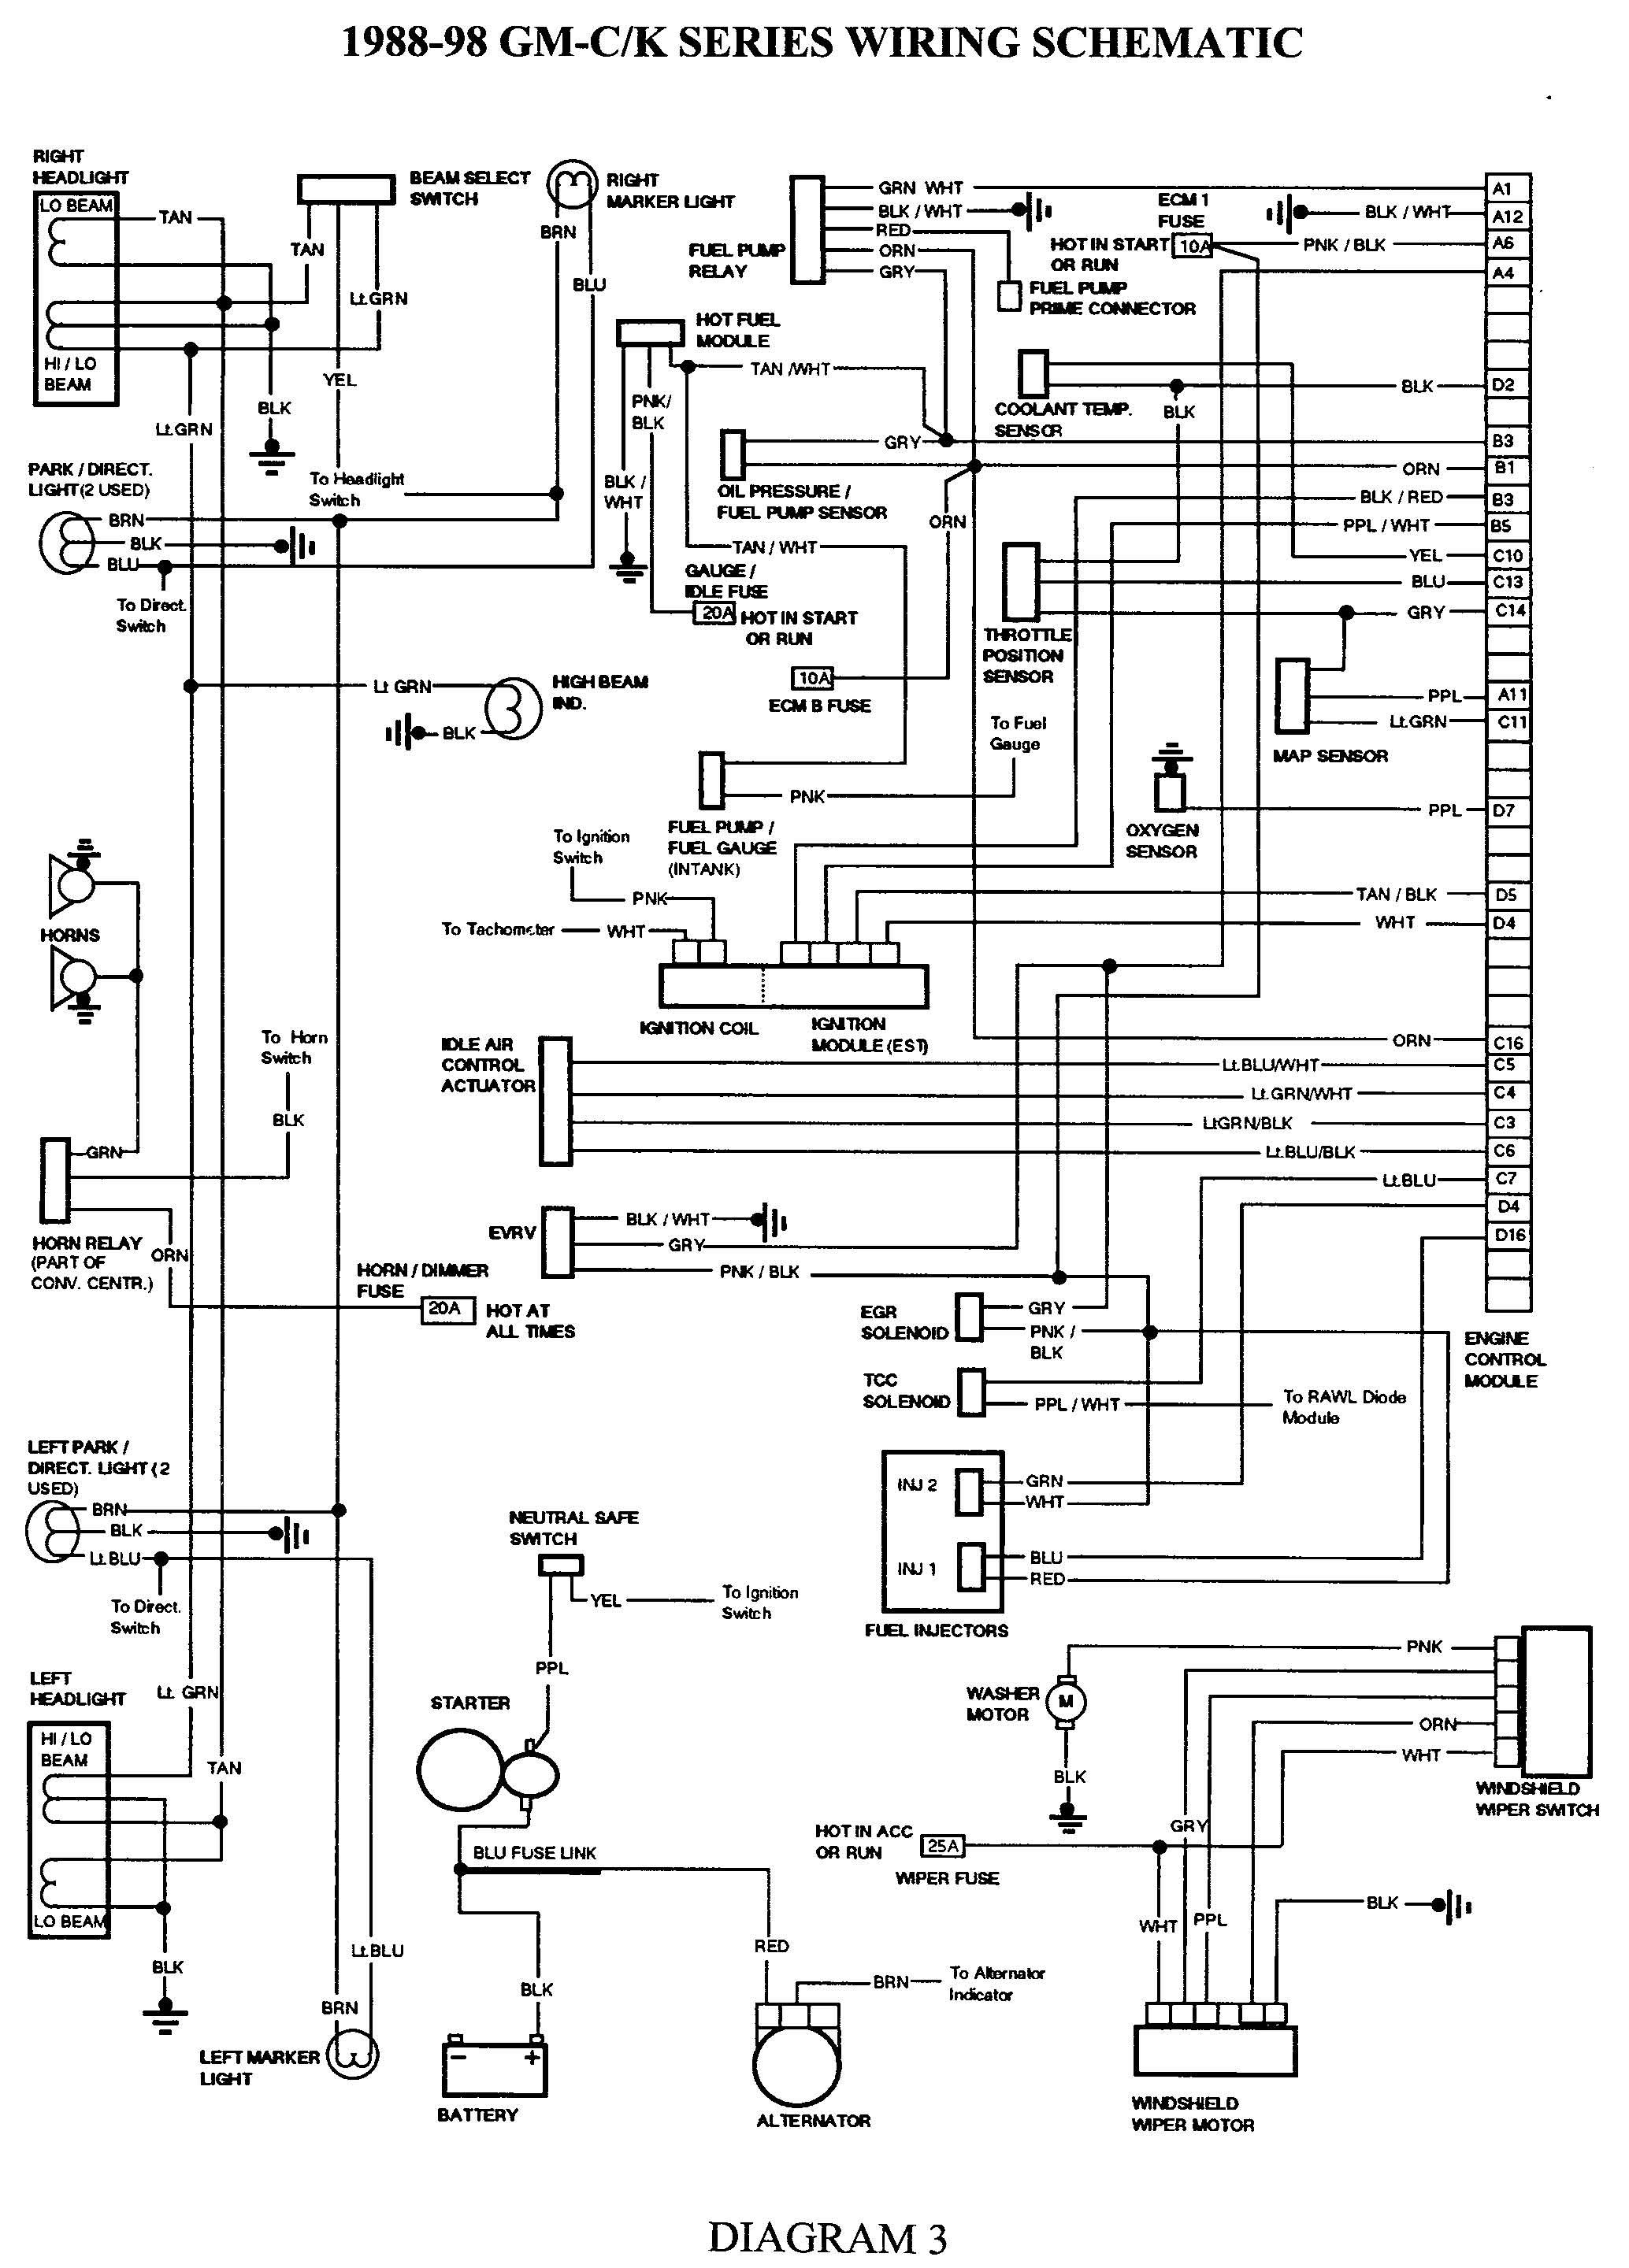 gmc truck wiring harness wiring data diagramgmc truck wiring diagrams on gm wiring harness diagram 88 98 kc gmc truck brake pads